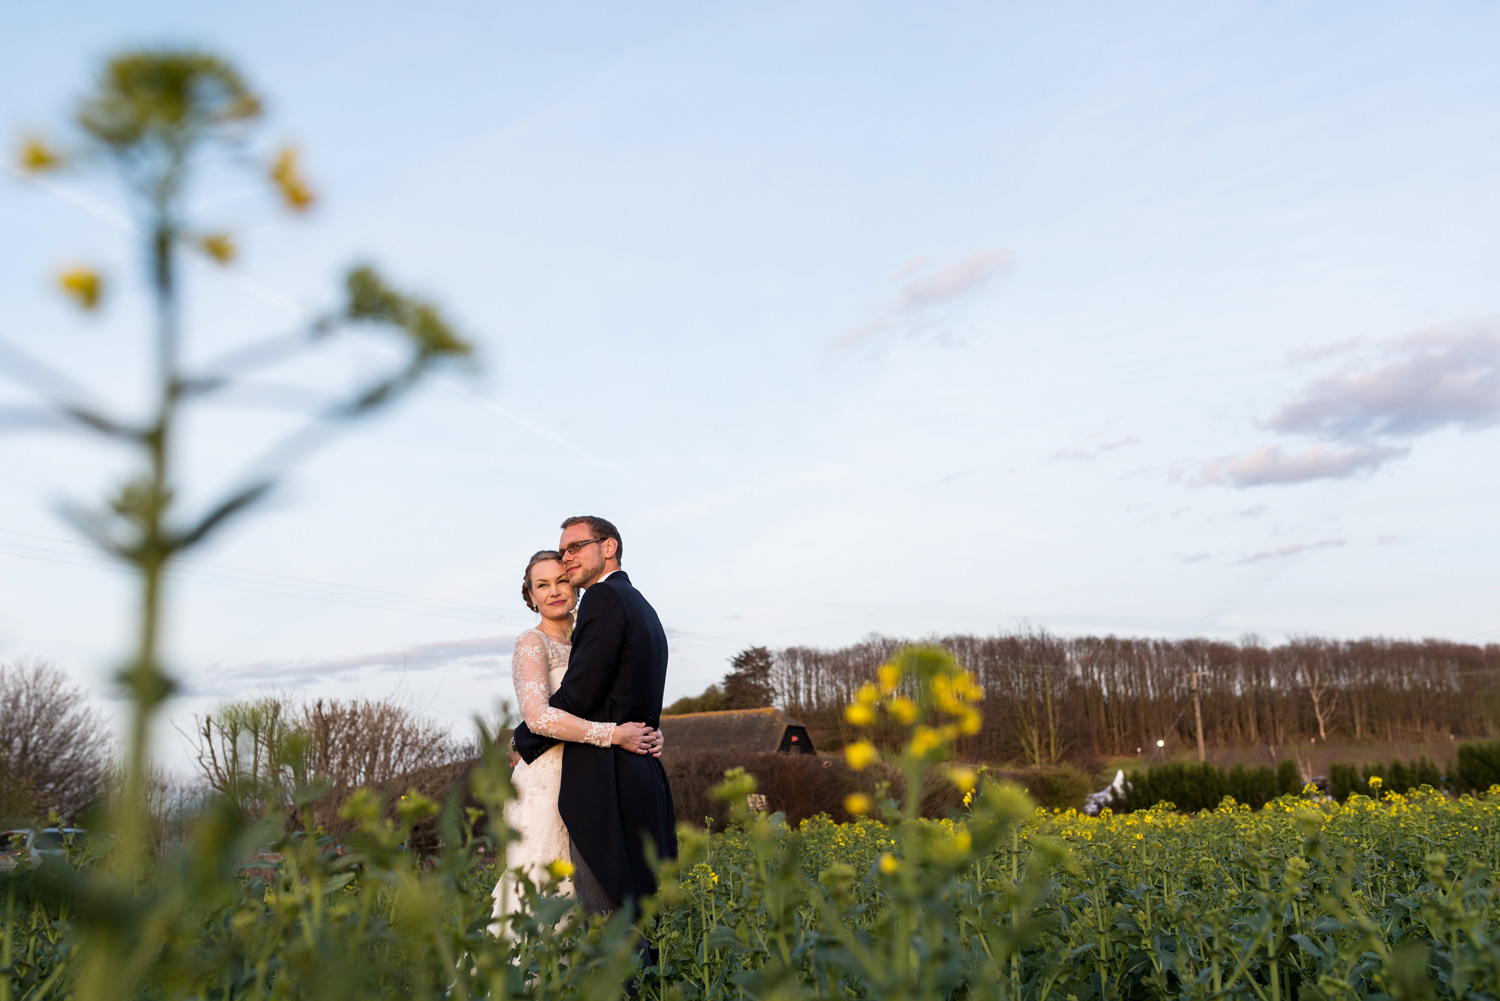 portrait of bride and groom in field